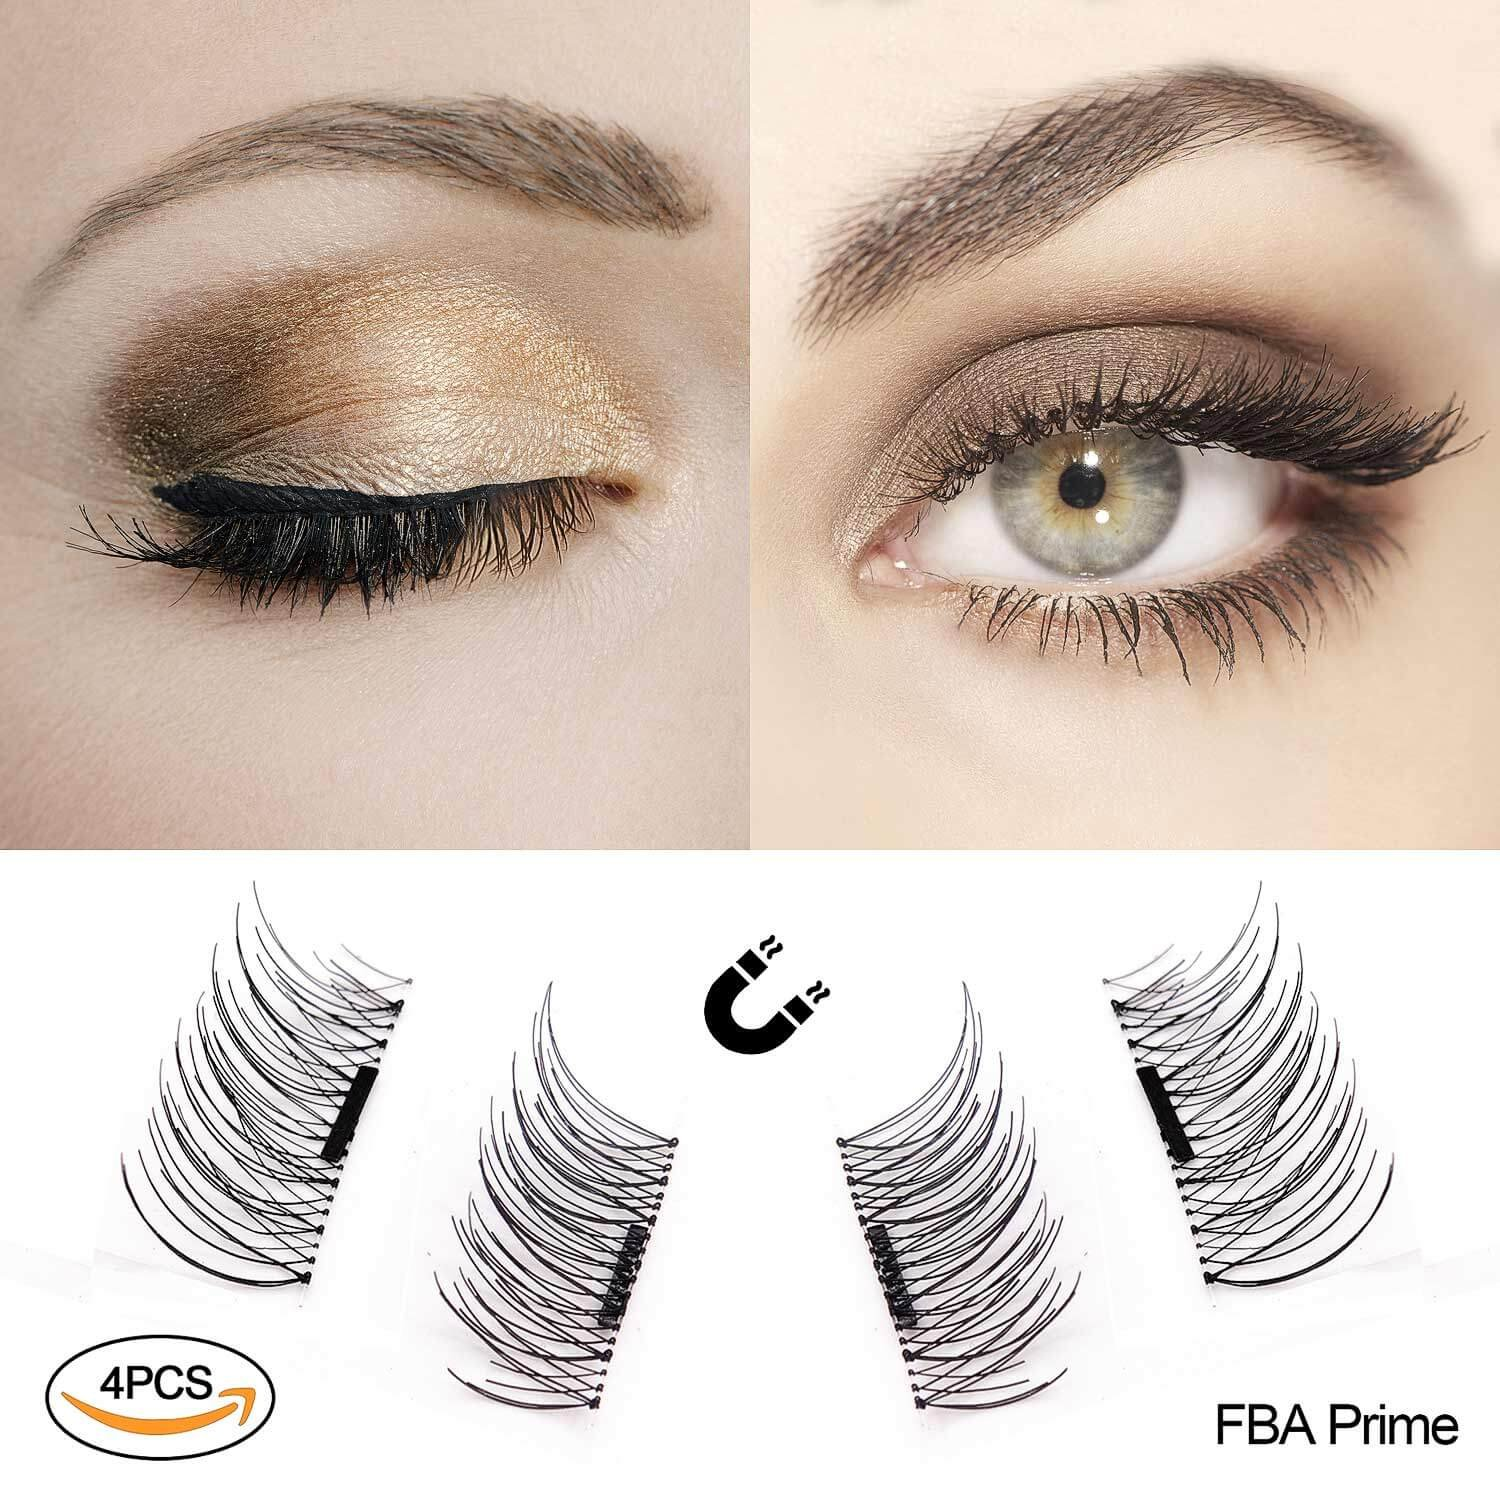 f5379722d91 Amazon.com : Magnetic False Eyelashes by Fstyle, Reusable Fake Eyelashes  Natural Look, Eye lashes Extension Ultra Thin Fiber No Glue Allergy,  Cruelty Free, ...